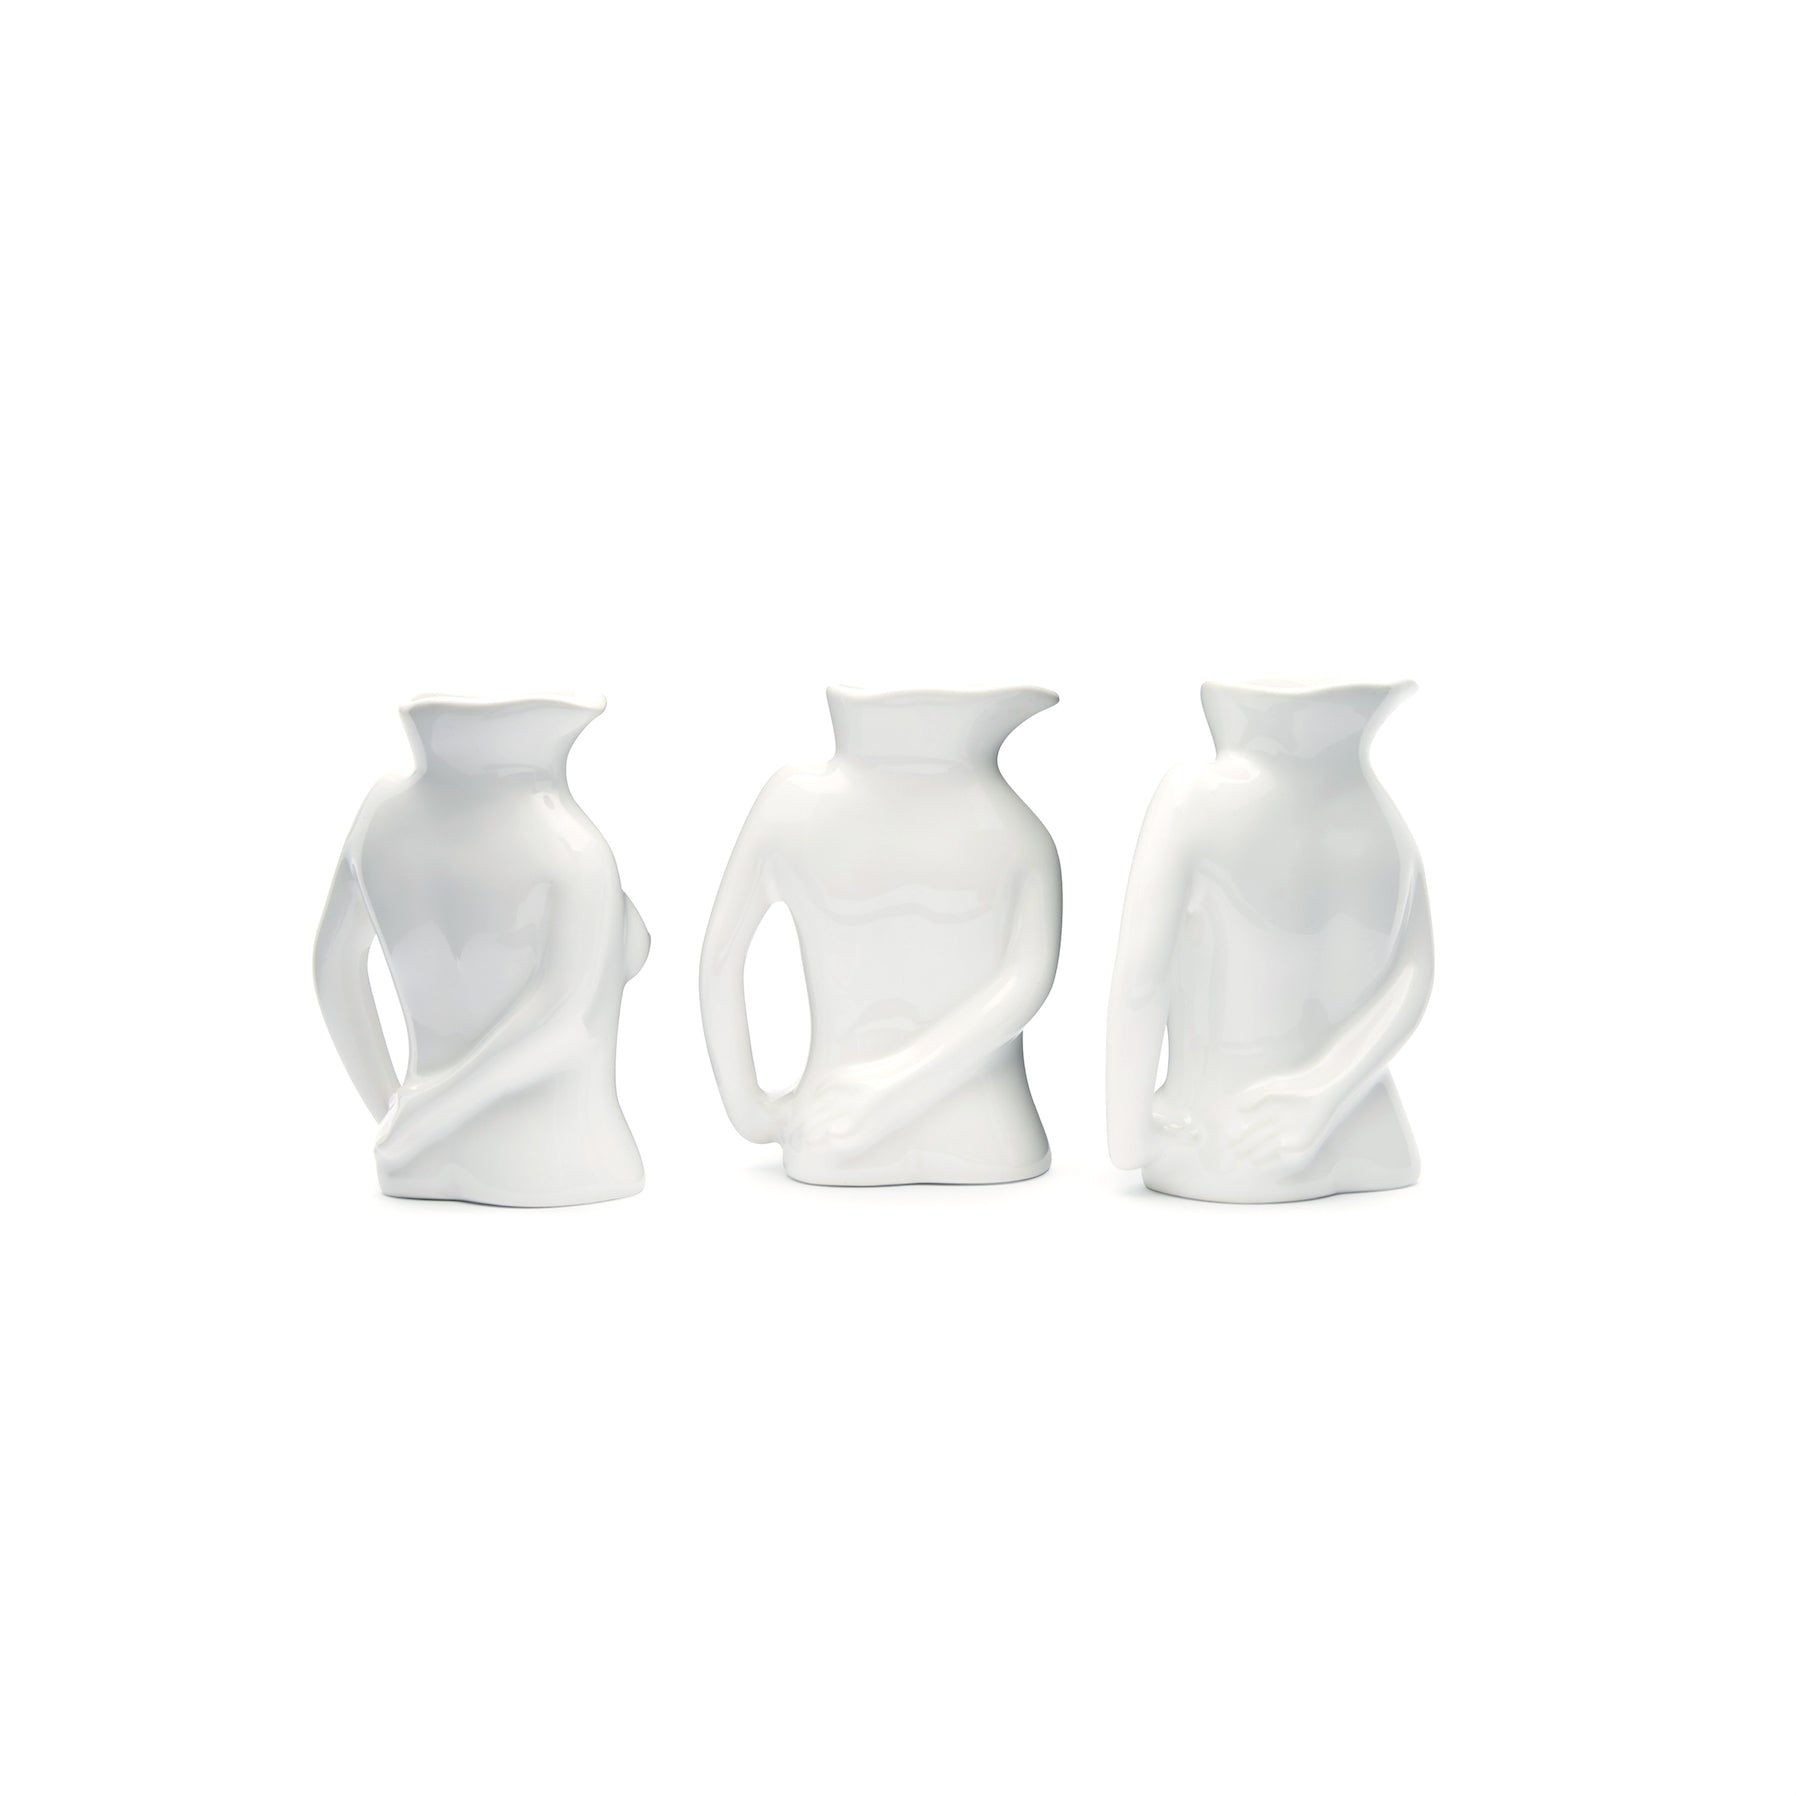 Mini Jugs Jug Trio White Shiny